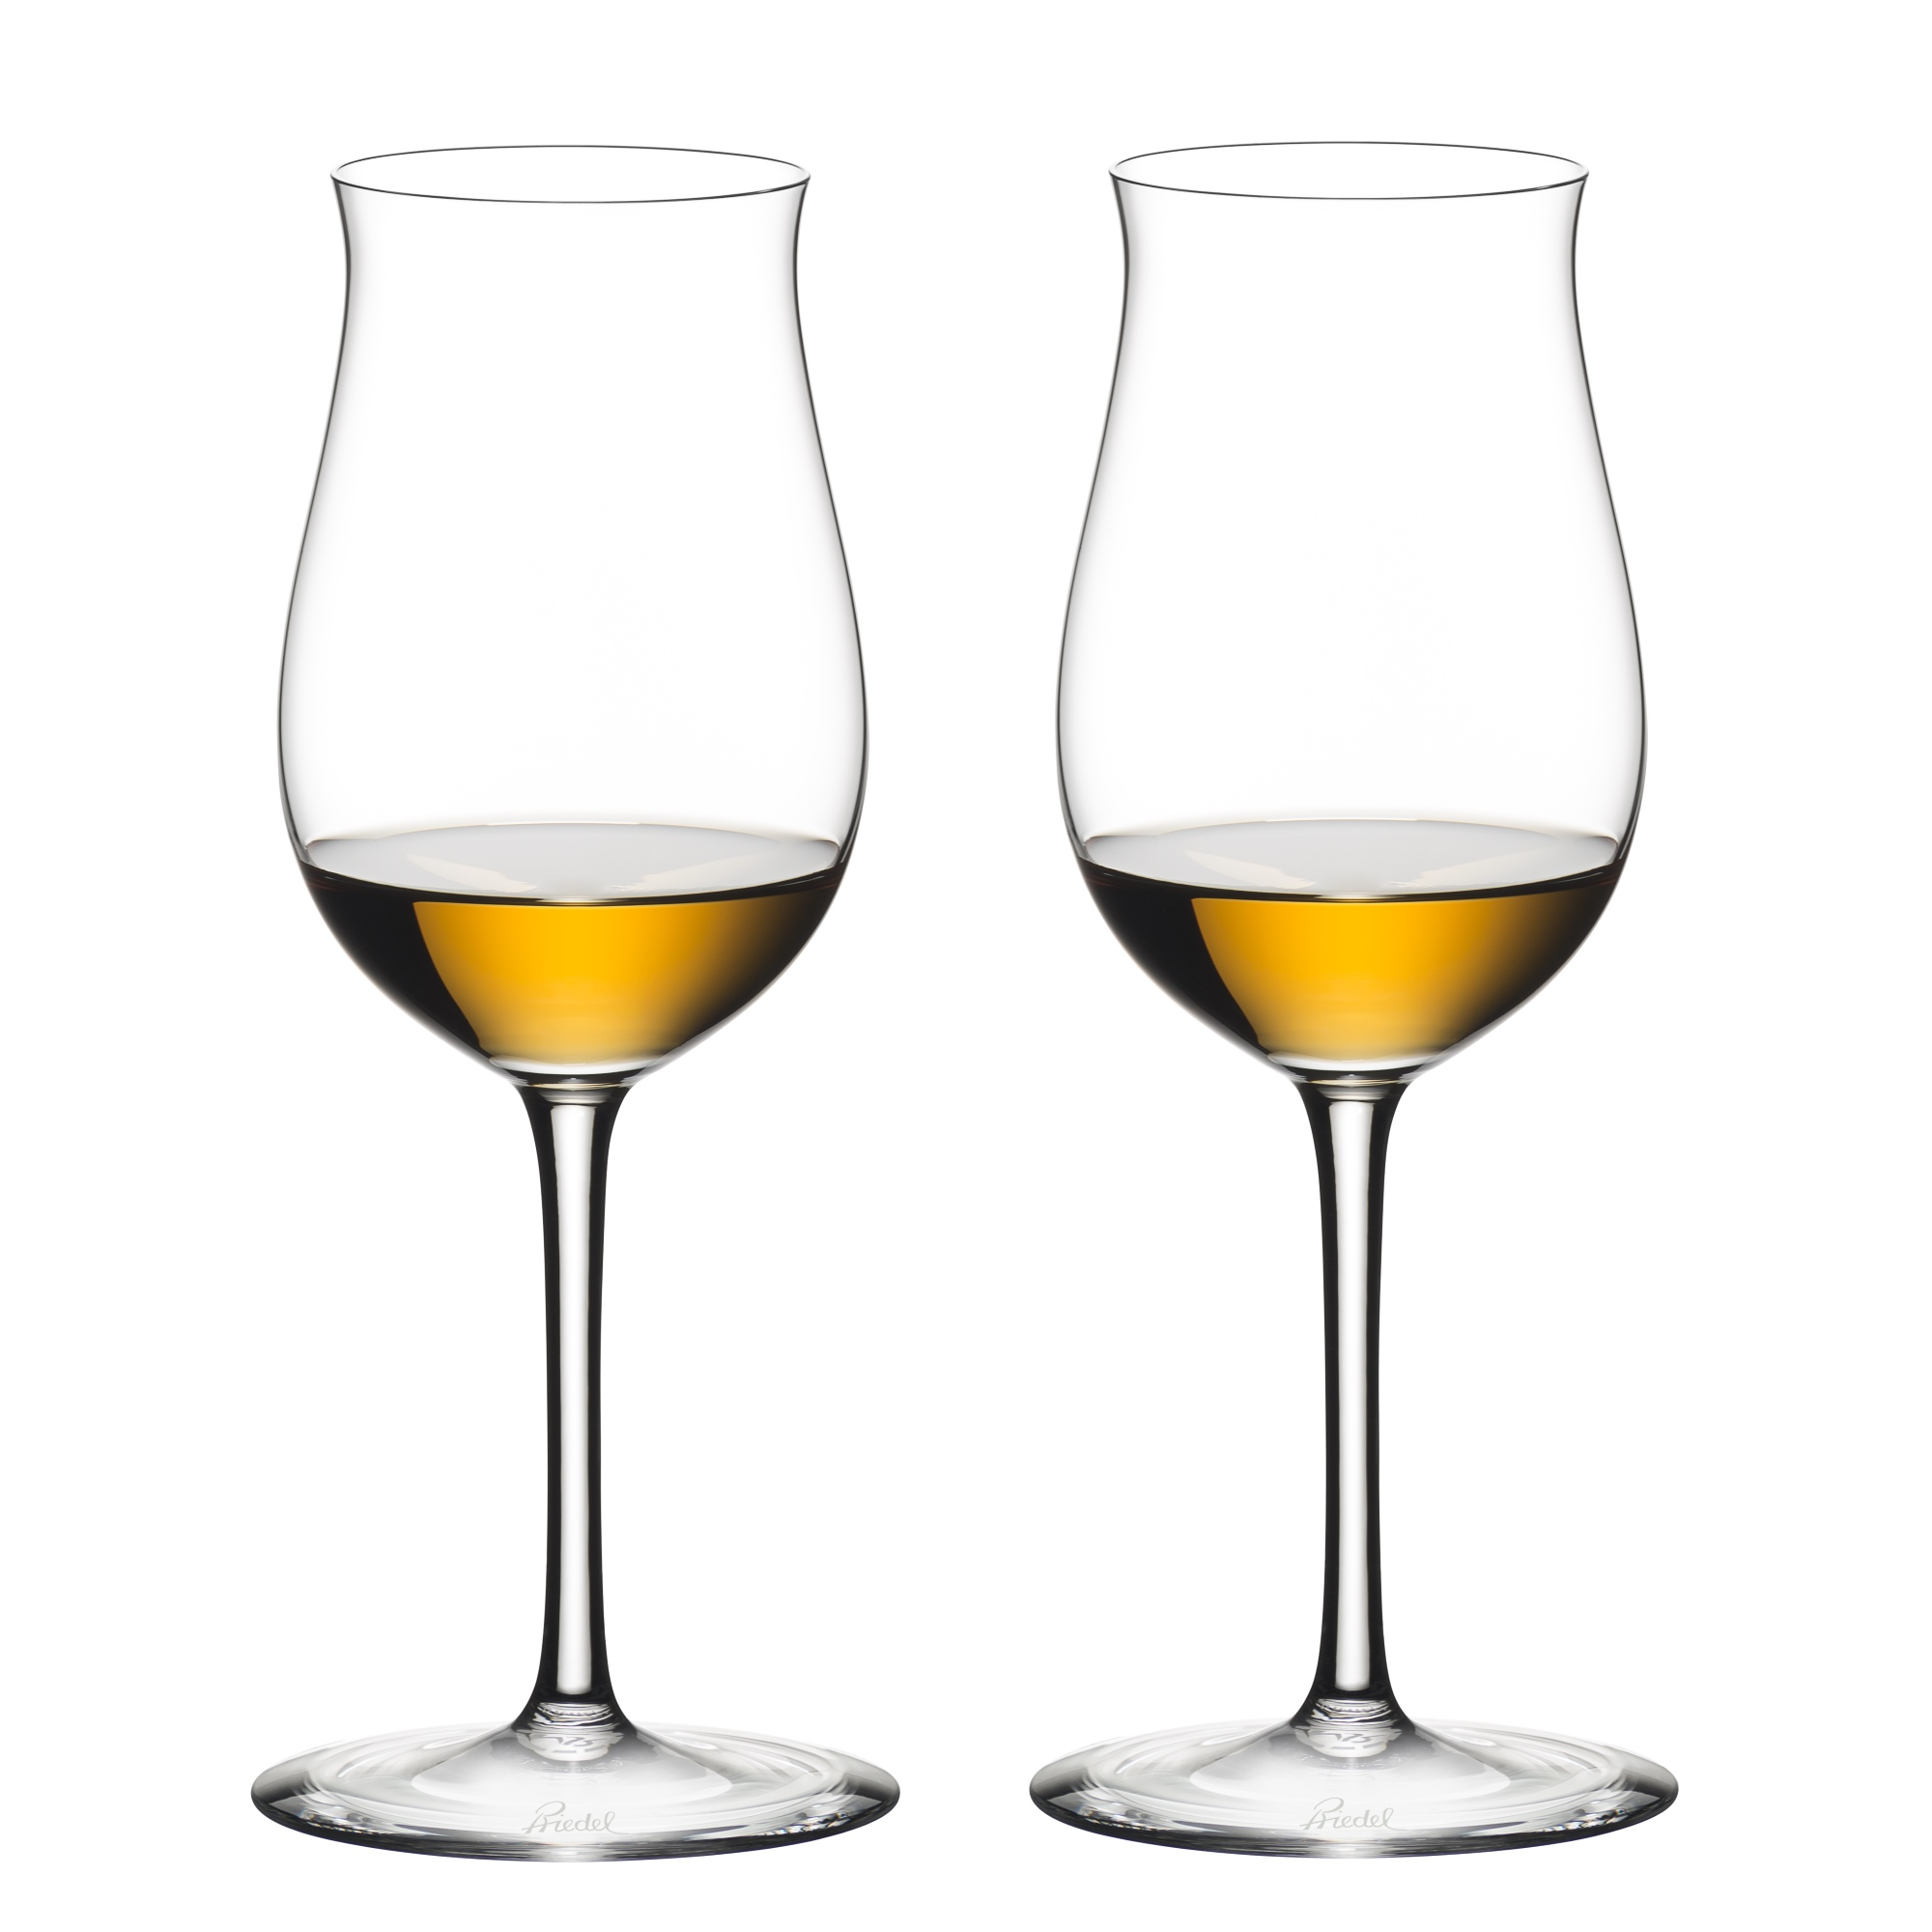 Riedel Glas Riedel Sommeliers Series Cognac V S O P Glass Set Of 2 Capacity 160 Ml